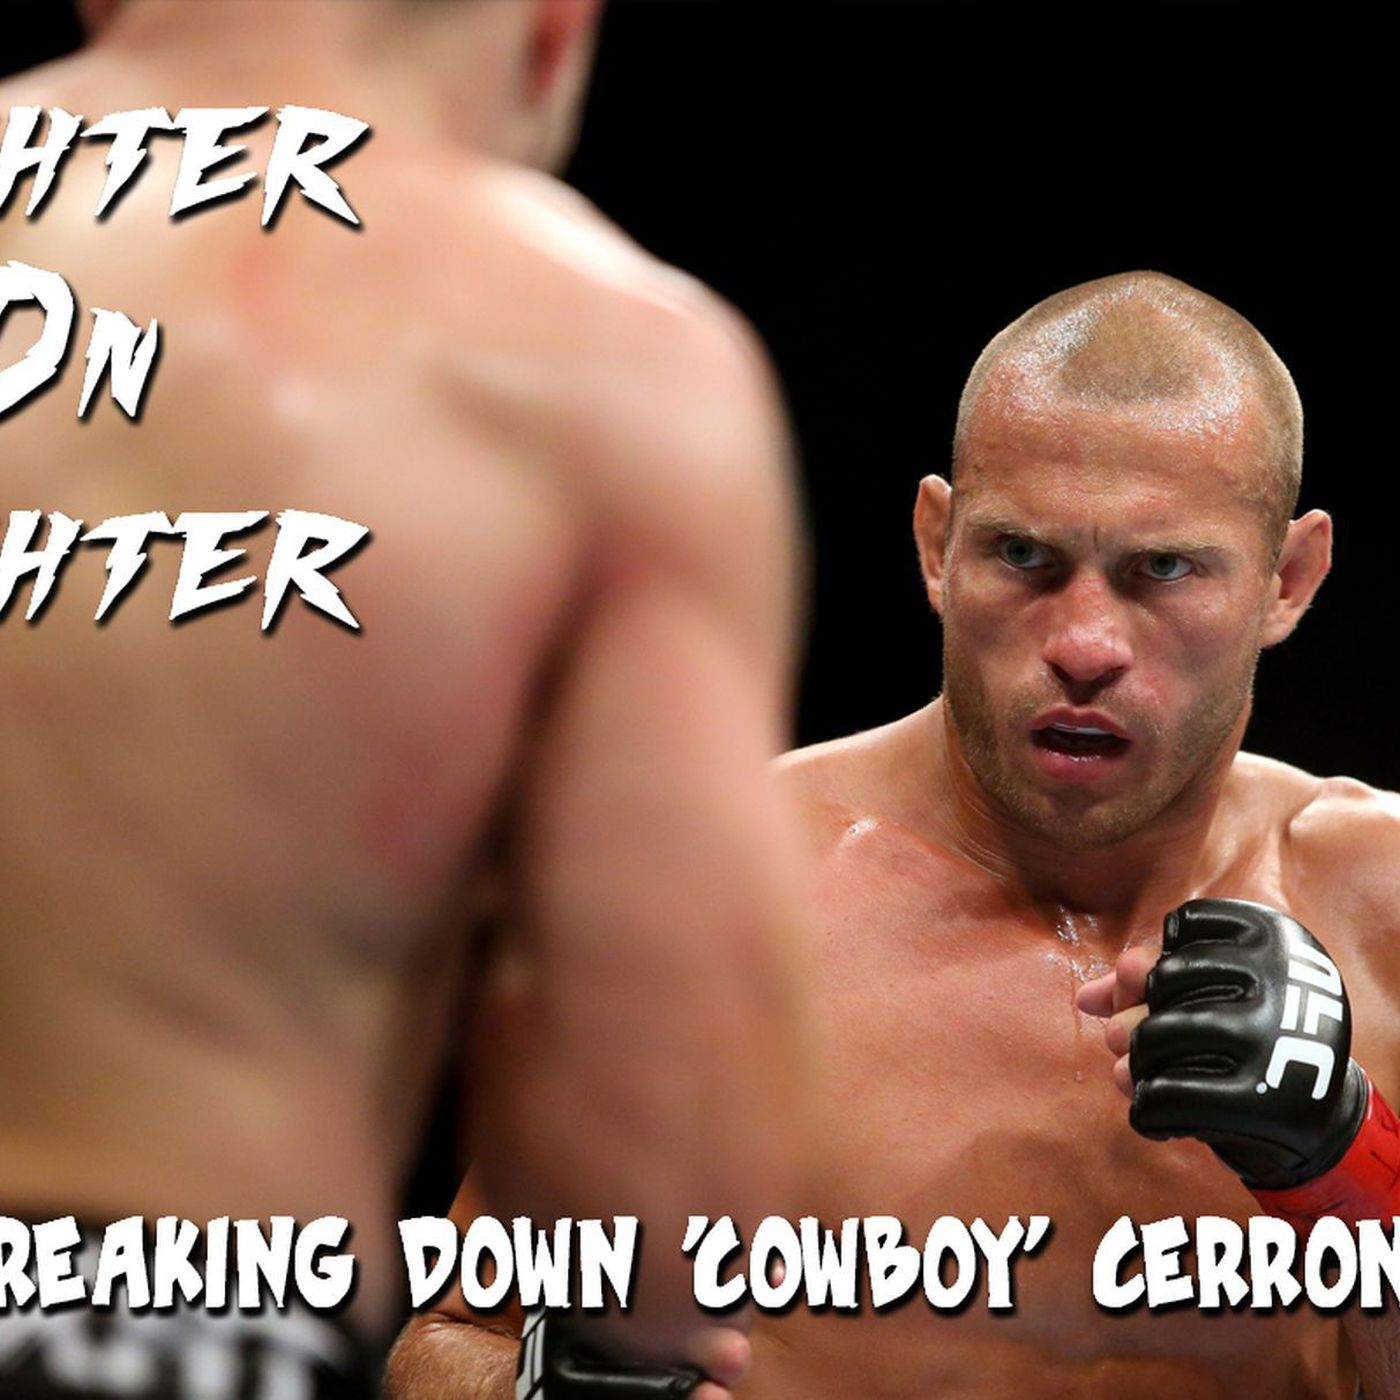 Fighter on fighter breaking down ufc fight night 132s donald fighter on fighter breaking down ufc fight night 132s donald cerrone mmamania malvernweather Gallery